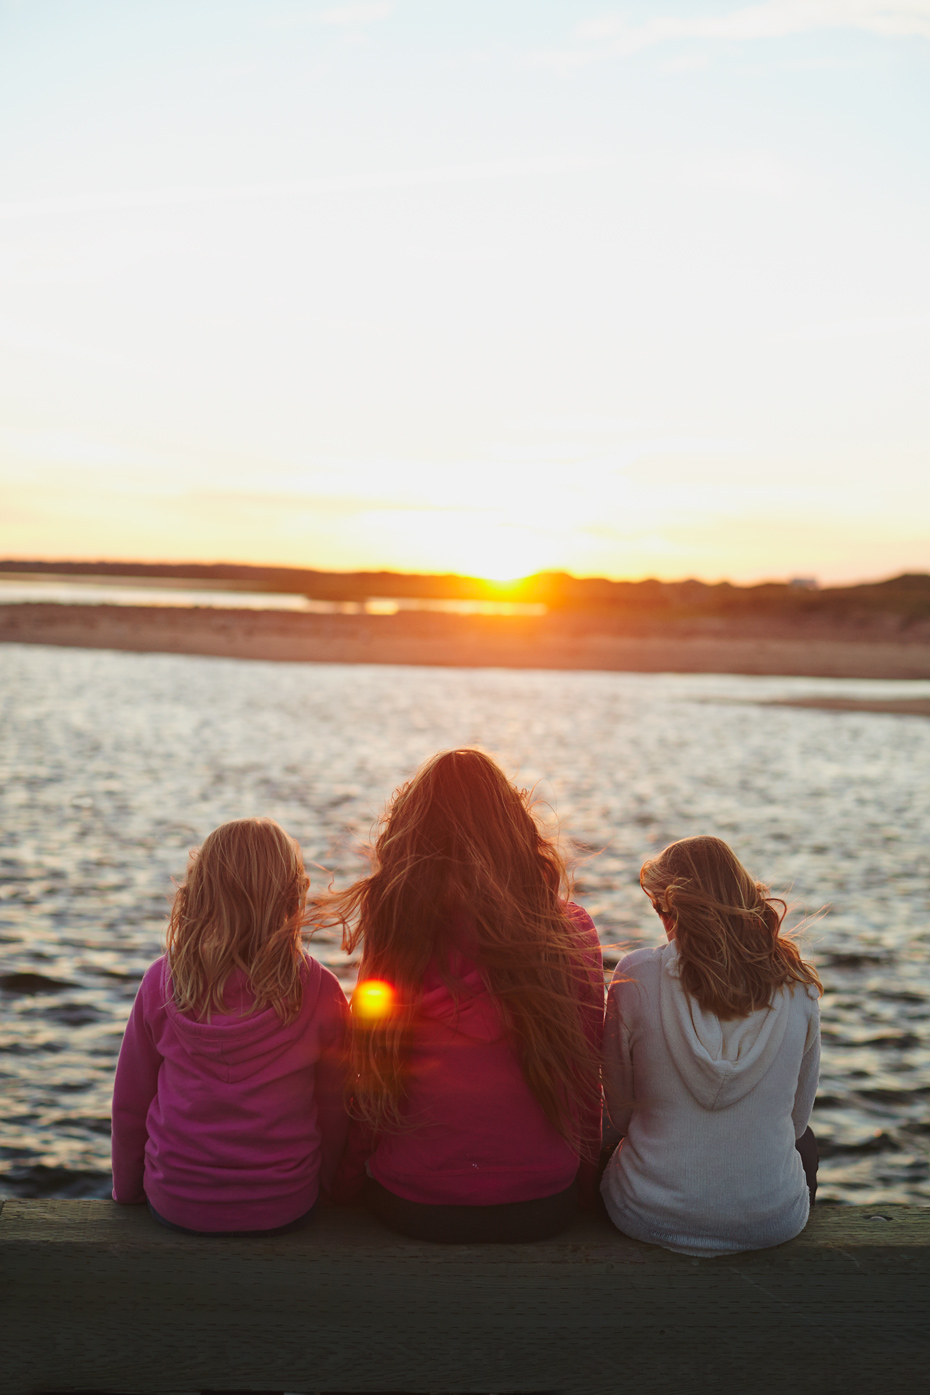 Stacey Van Berkel Photography I Three girls watching the sunset at Covehead Wharf I Prince Edward Island, Canada